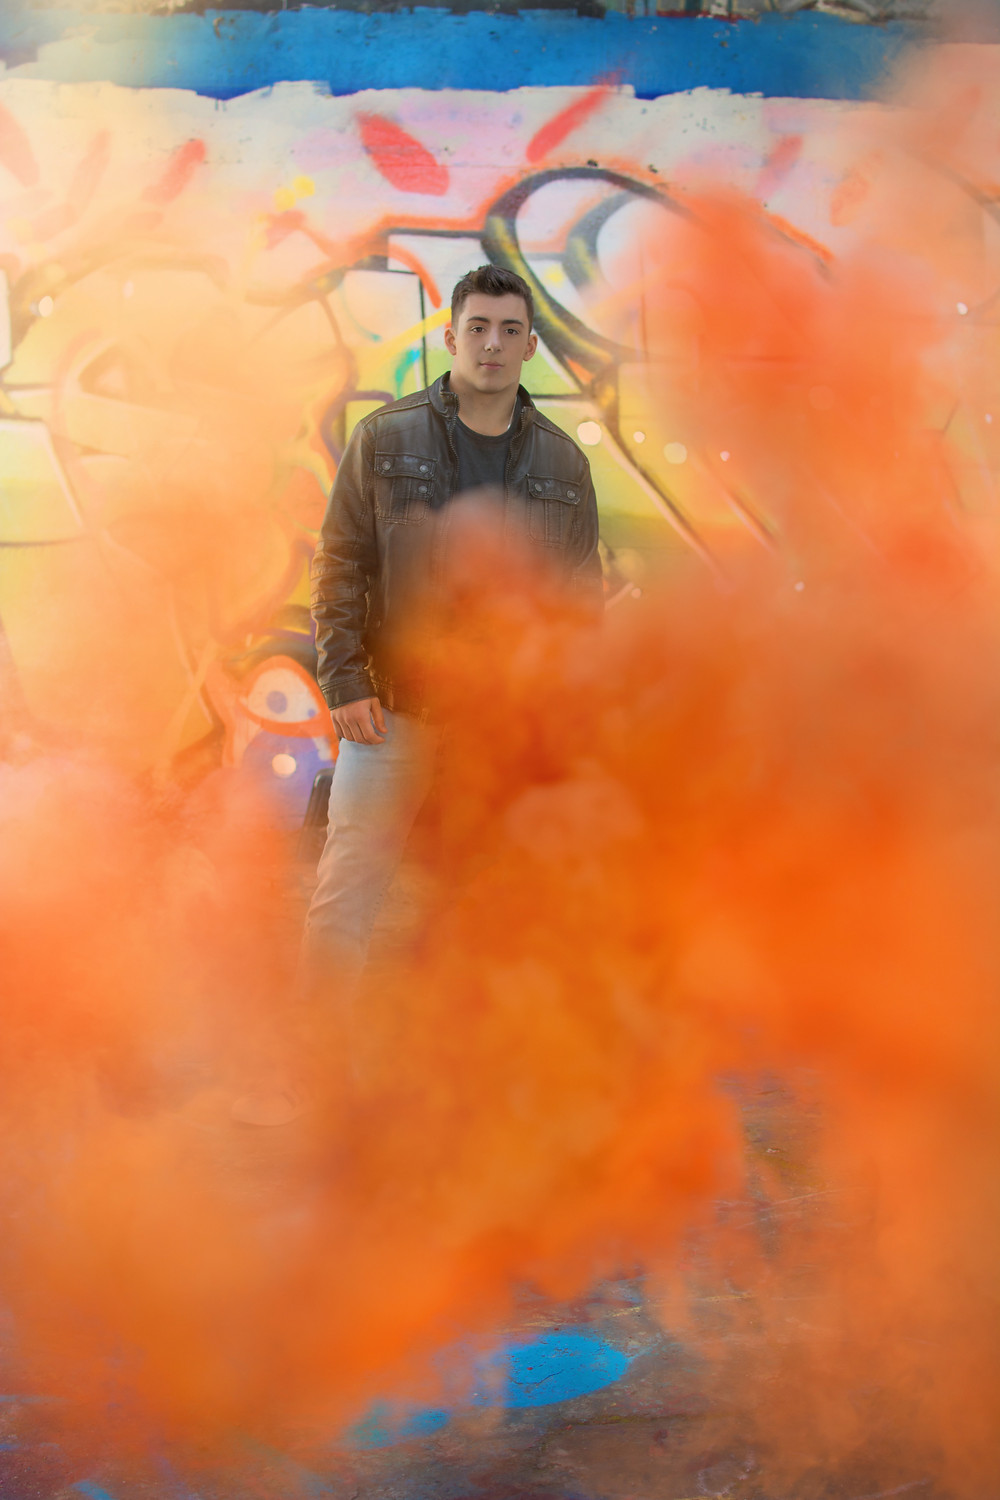 Smoke bombs are a versatile, stunning way to add something special to your sessions.